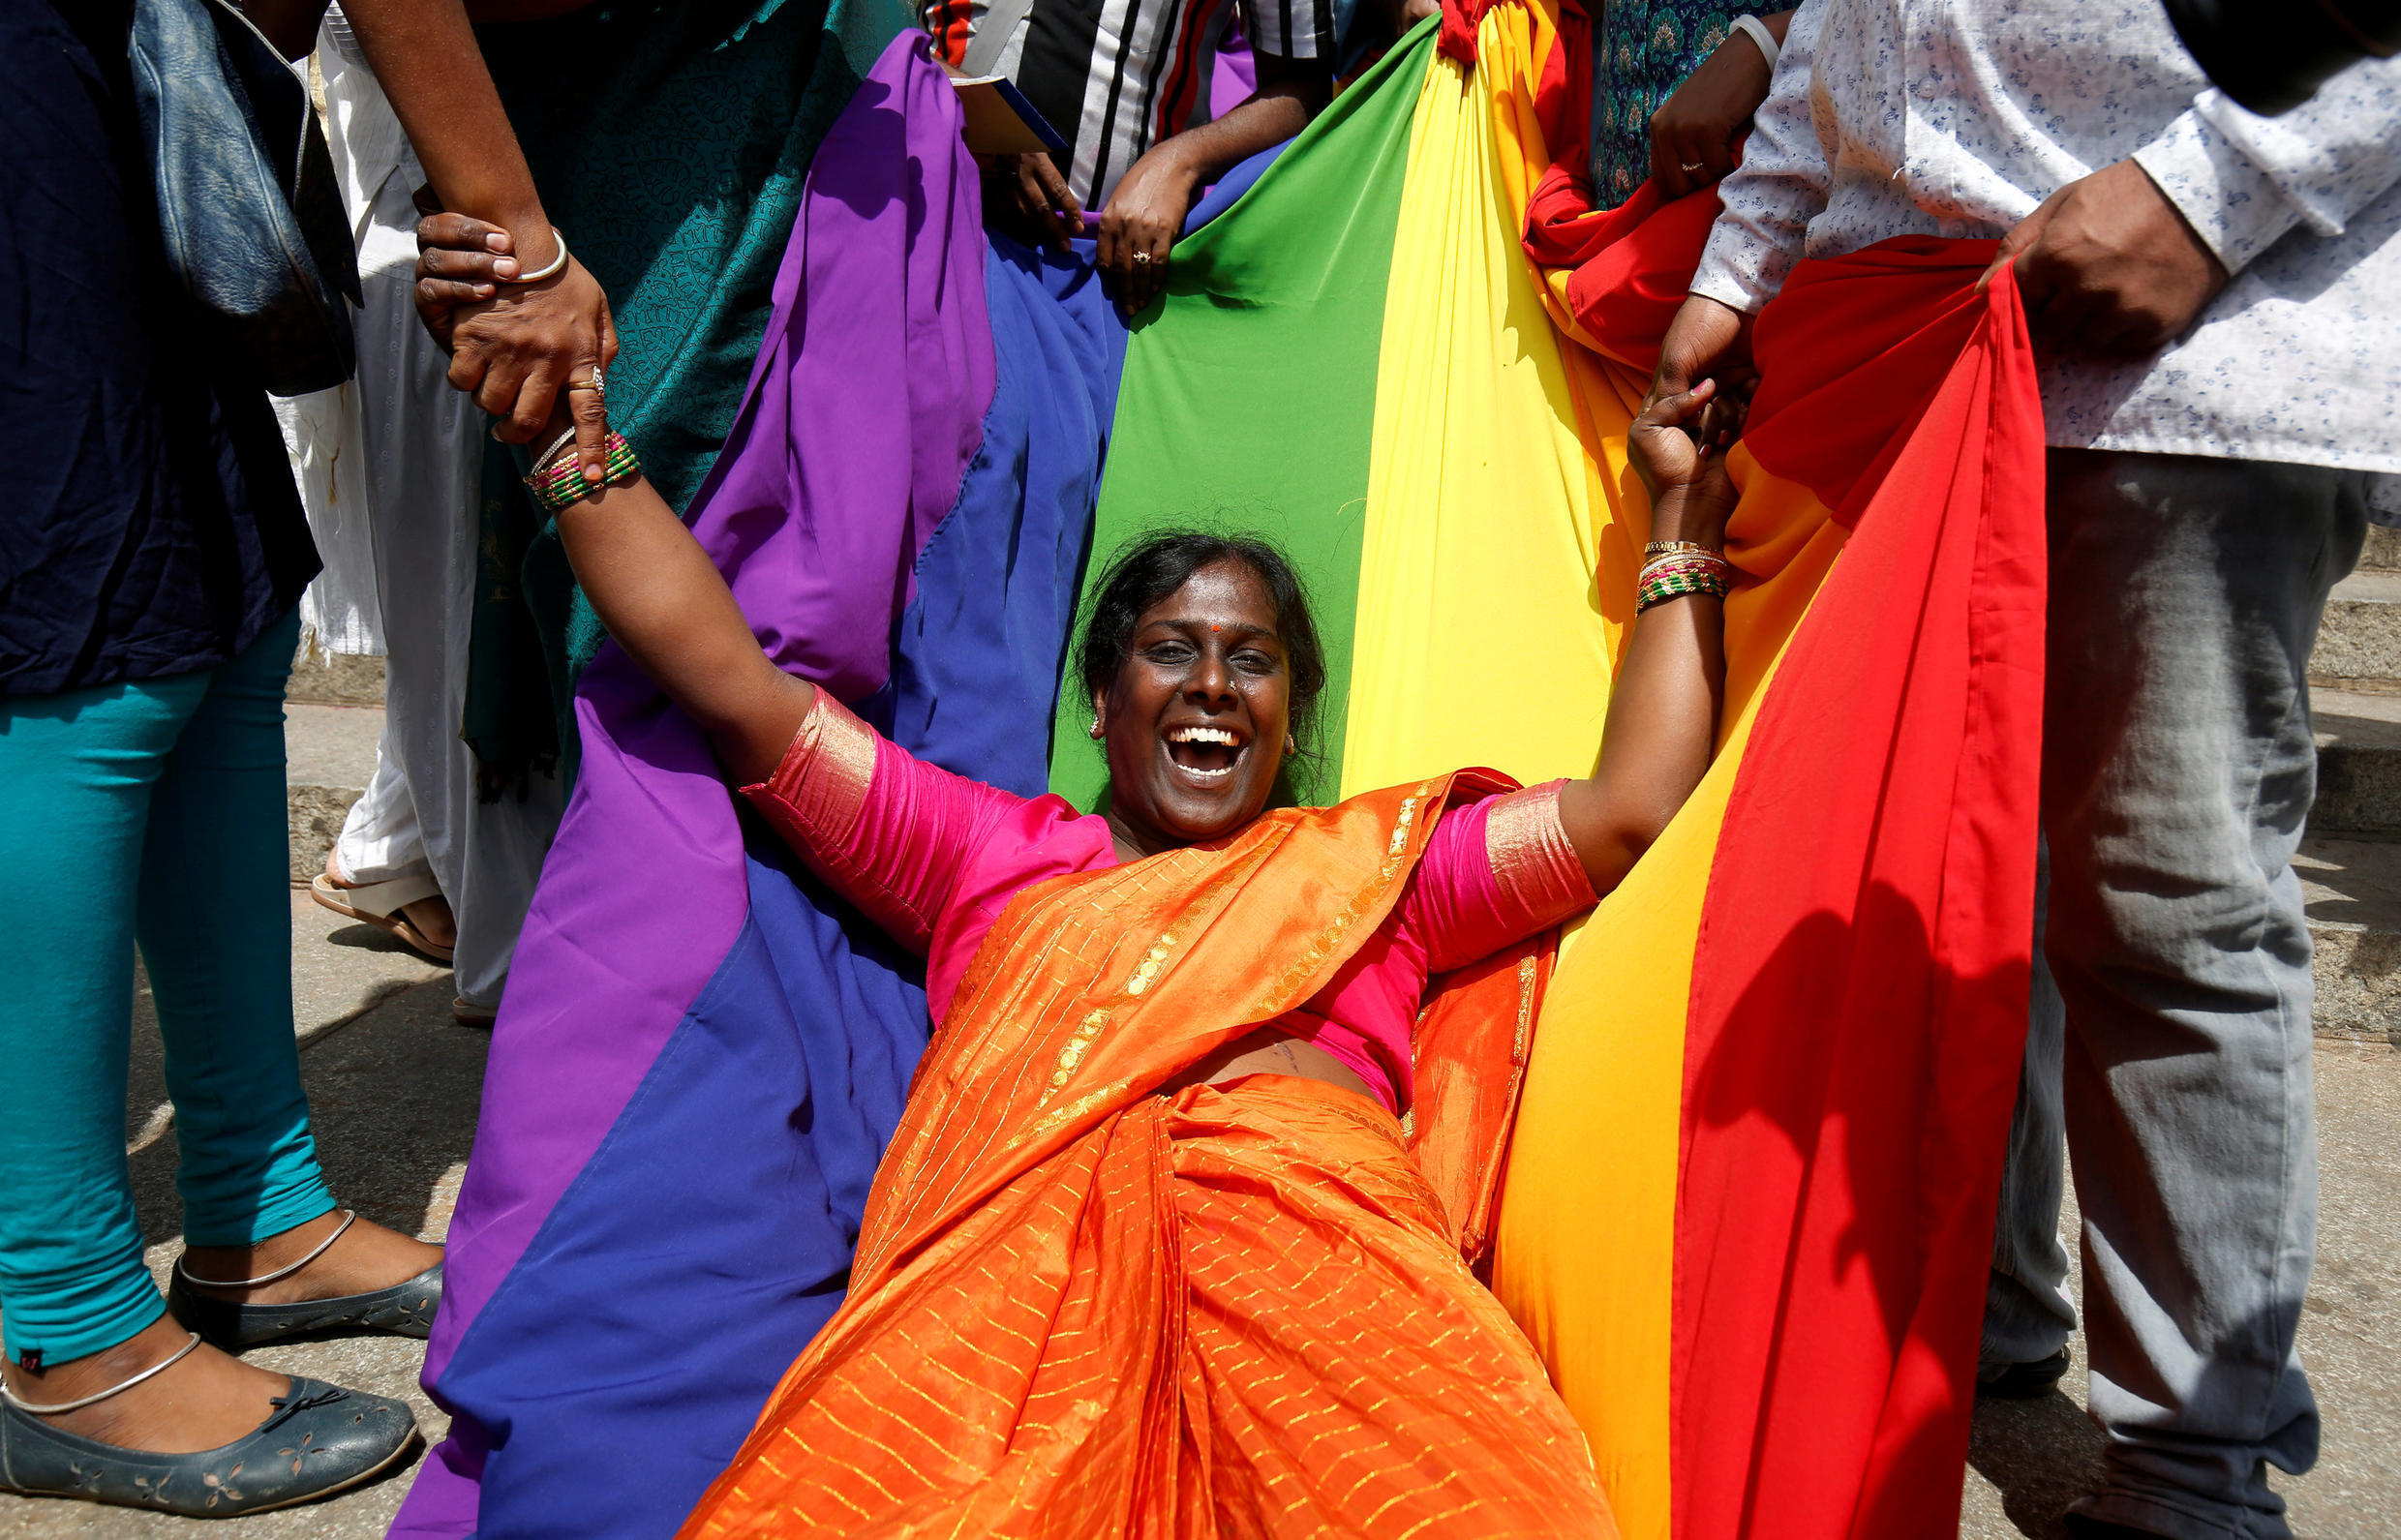 An activist of lesbian, gay, bisexual and transgender (LGBT) community in India 2018